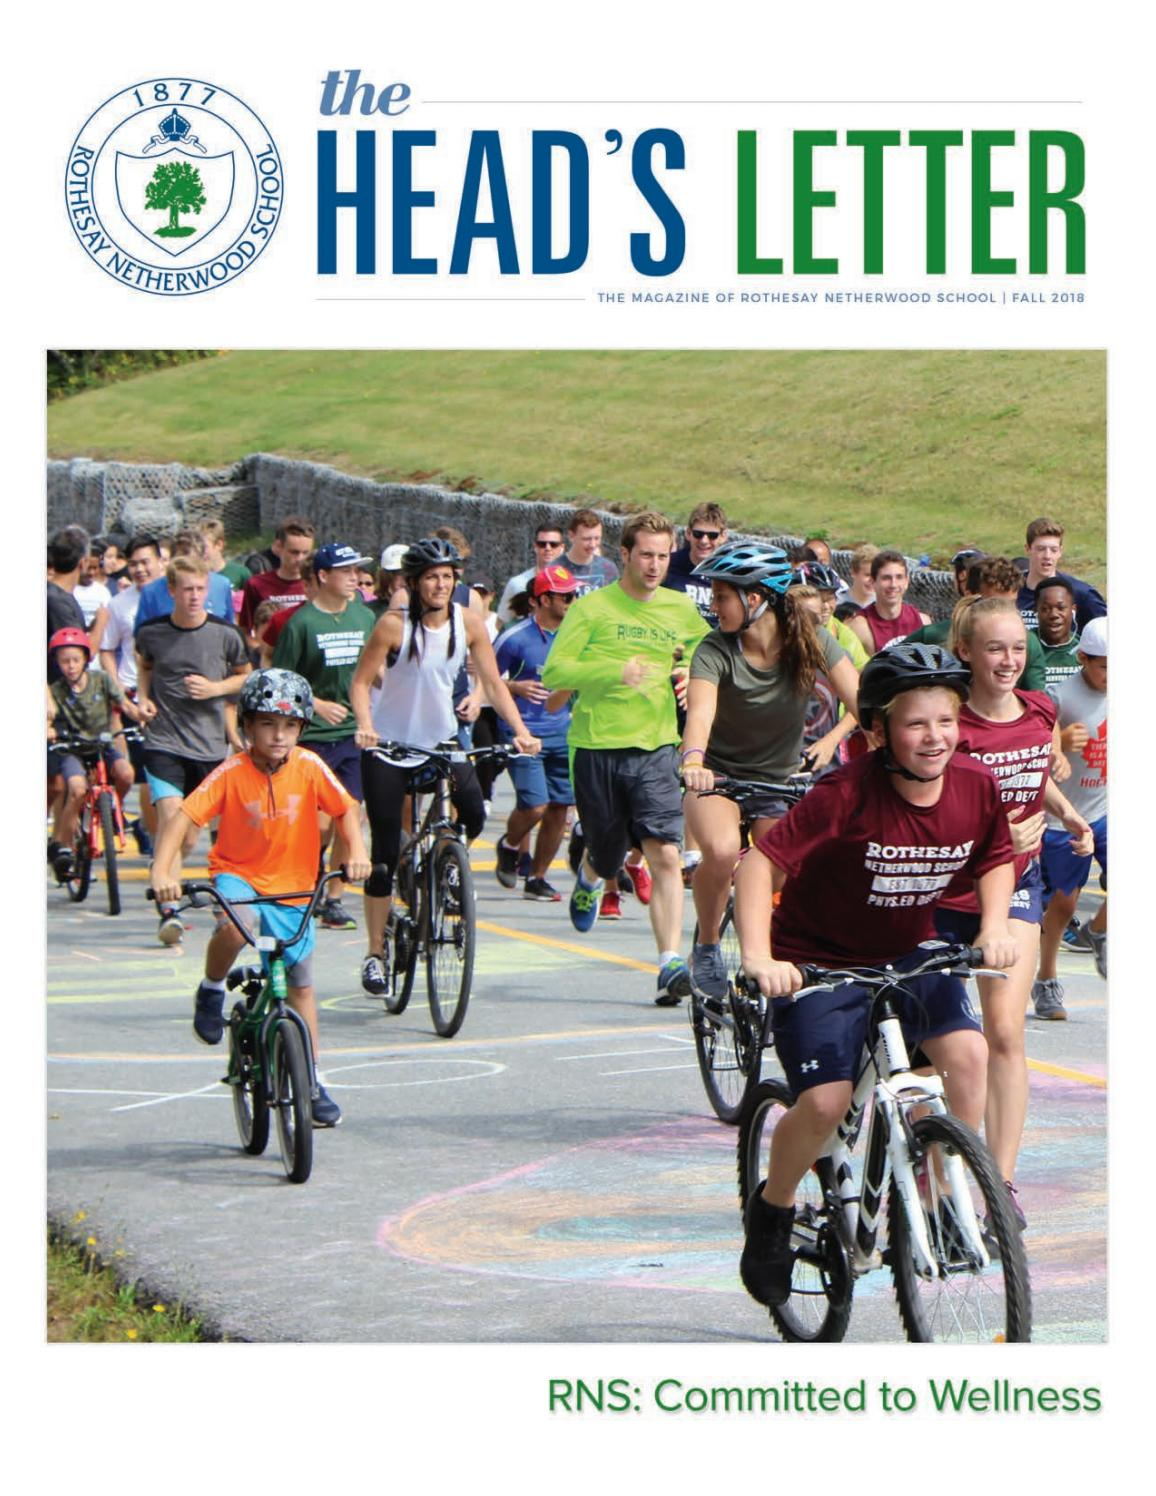 The Head s Letter - RNS  Committed to Wellness by Rothesay Netherwood School  - issuu ae39991fa